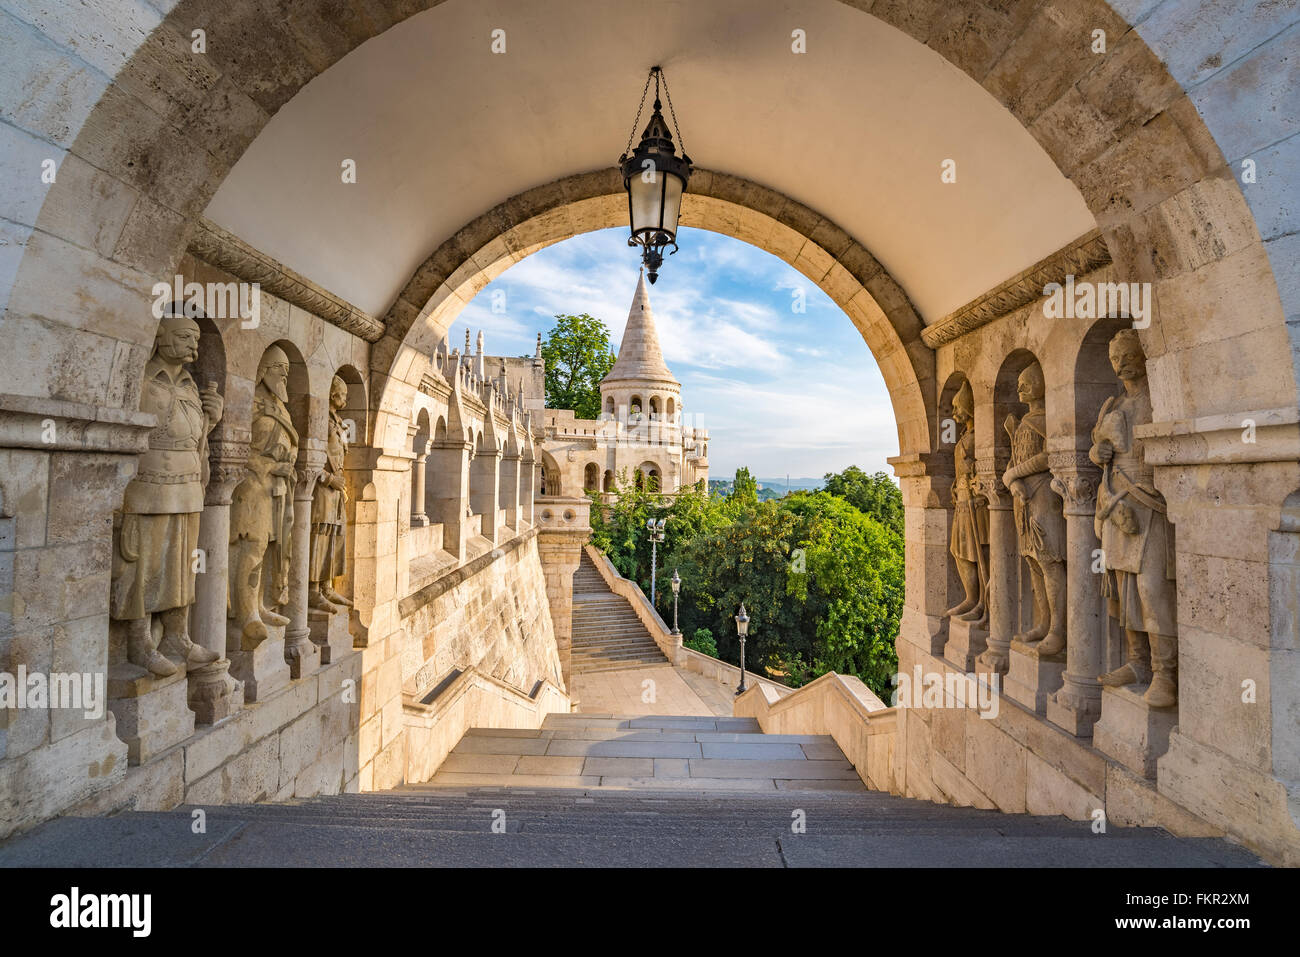 Fisherman Bastion, Budapest, Hungary - Stock Image